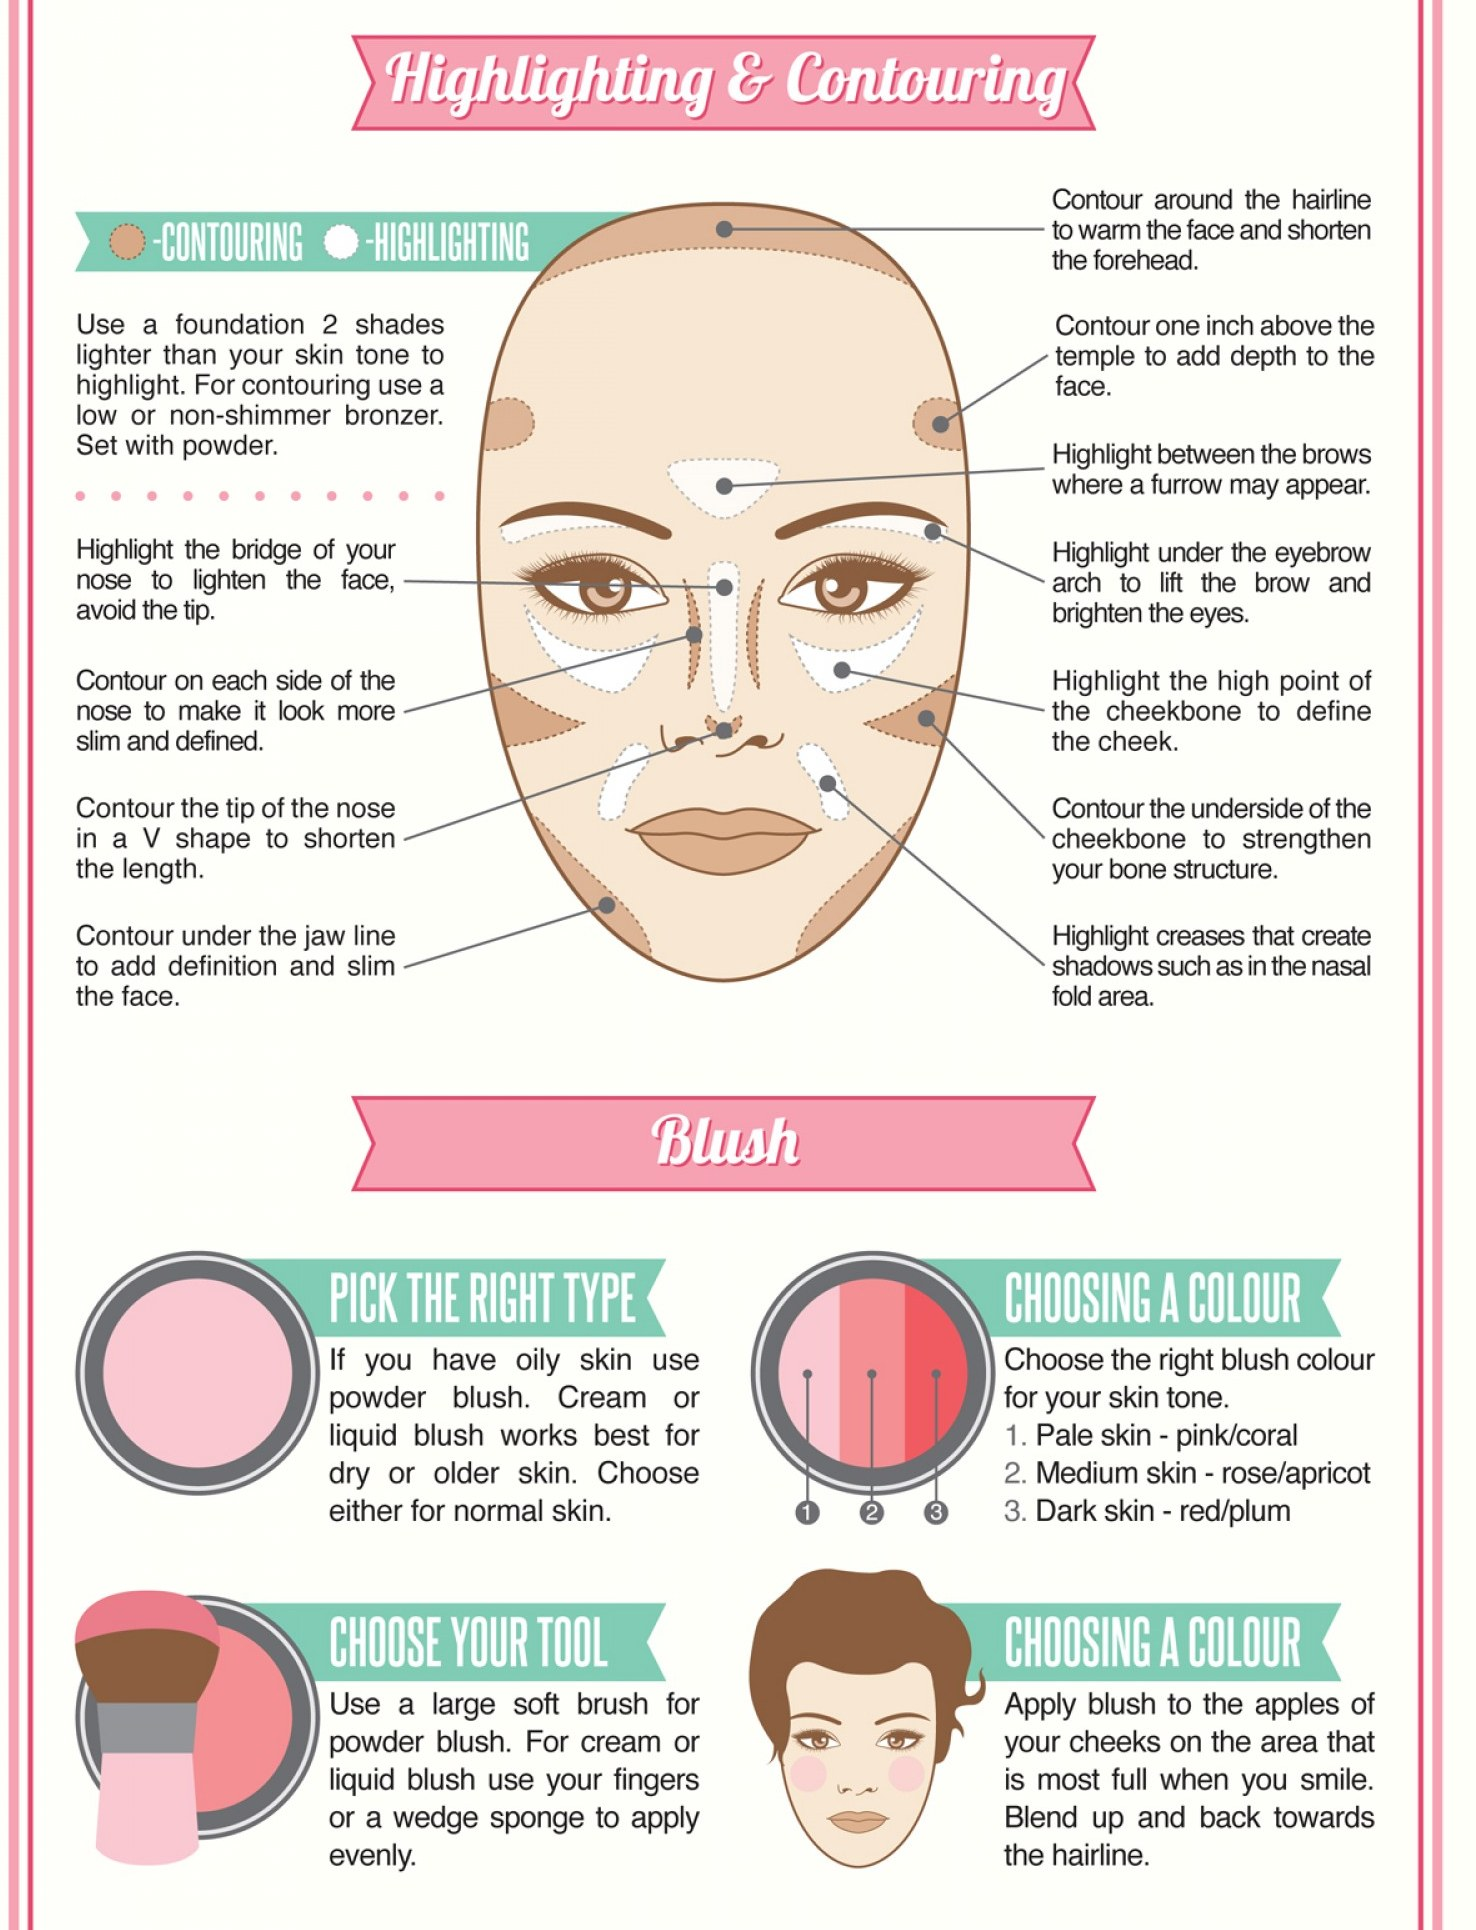 ... 9-unbelievably-simple-steps-to-perfect-makeup_53300a153e3d6_w1500 (2) ...